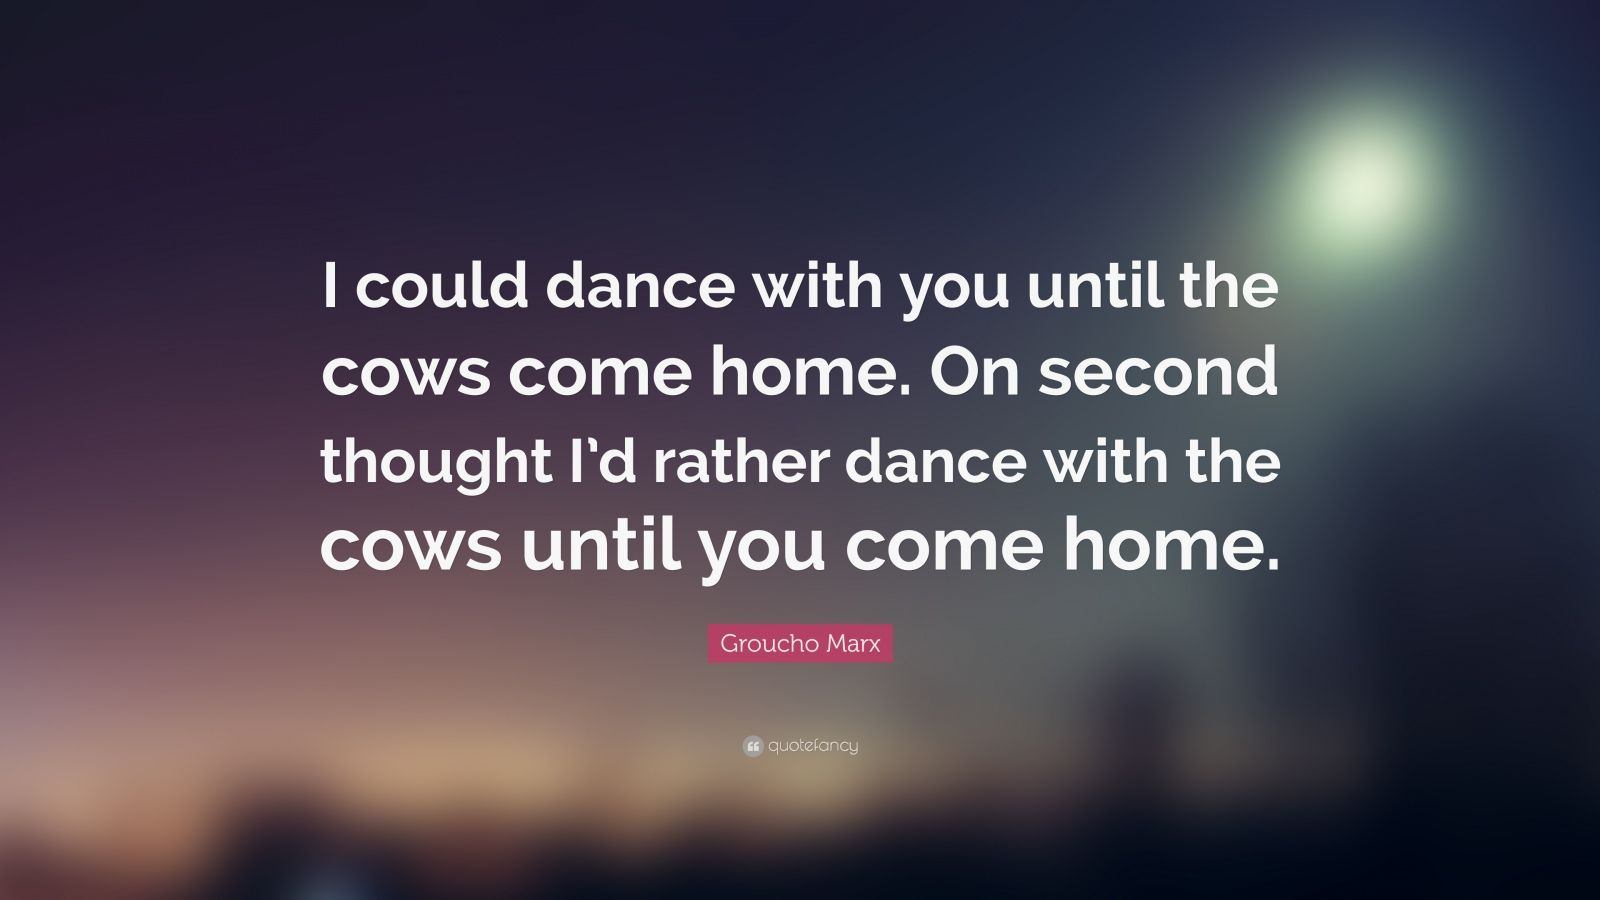 """Groucho Marx Quote: """"I could dance with you until the cows come home. On second thought I'd rather dance with the cows until you come home."""""""